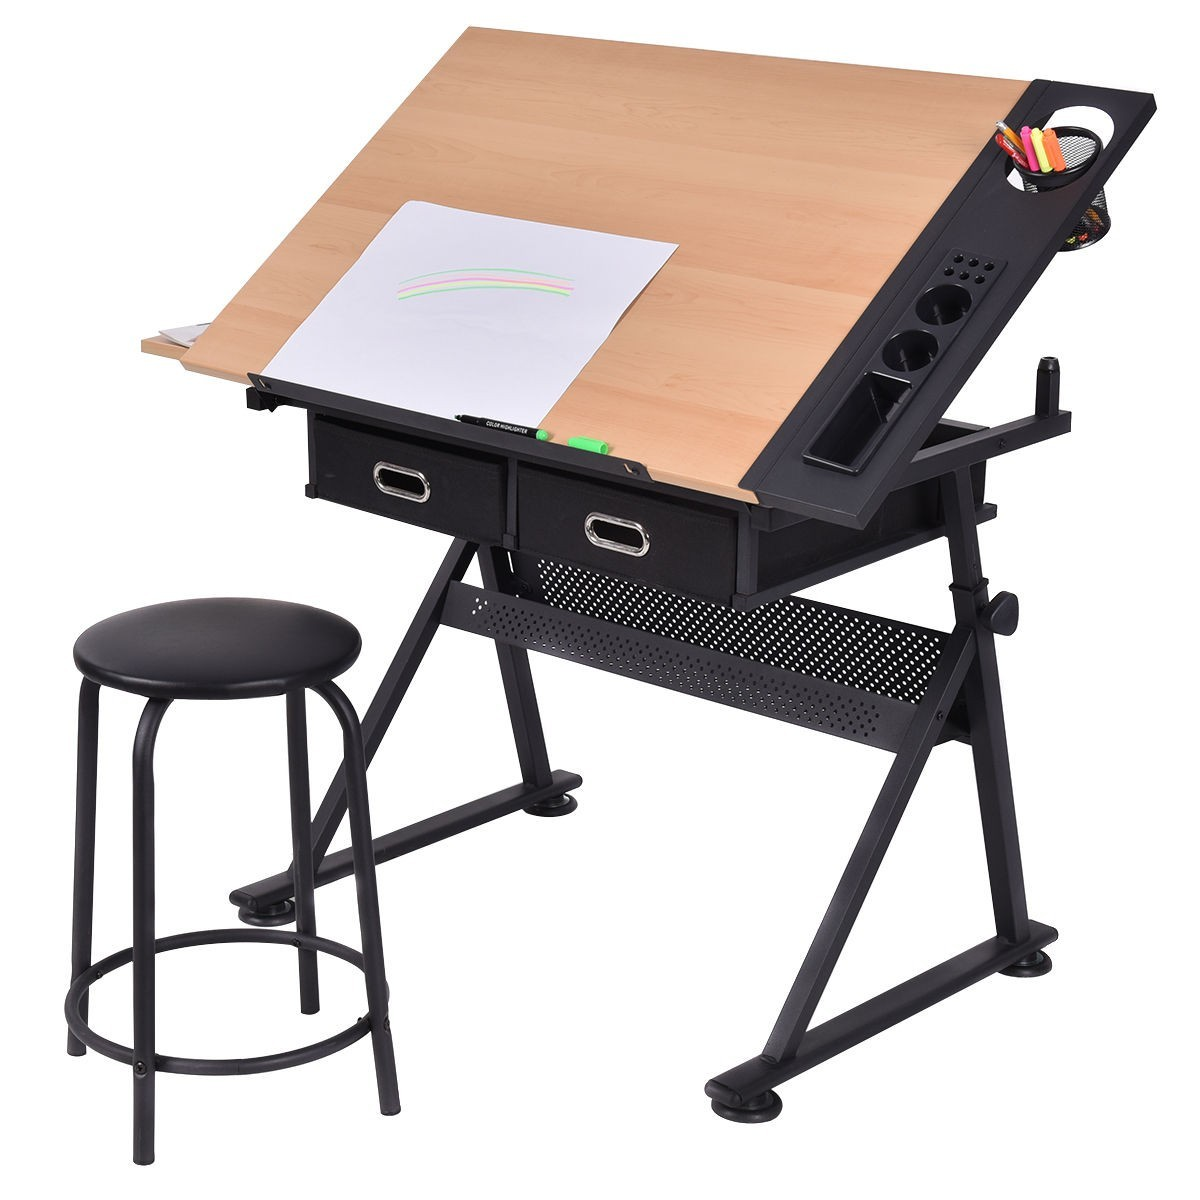 Superb Adjustable Drafting Table Art Craft Drawing Desk Art Hobby W/ Stool And  Drawers